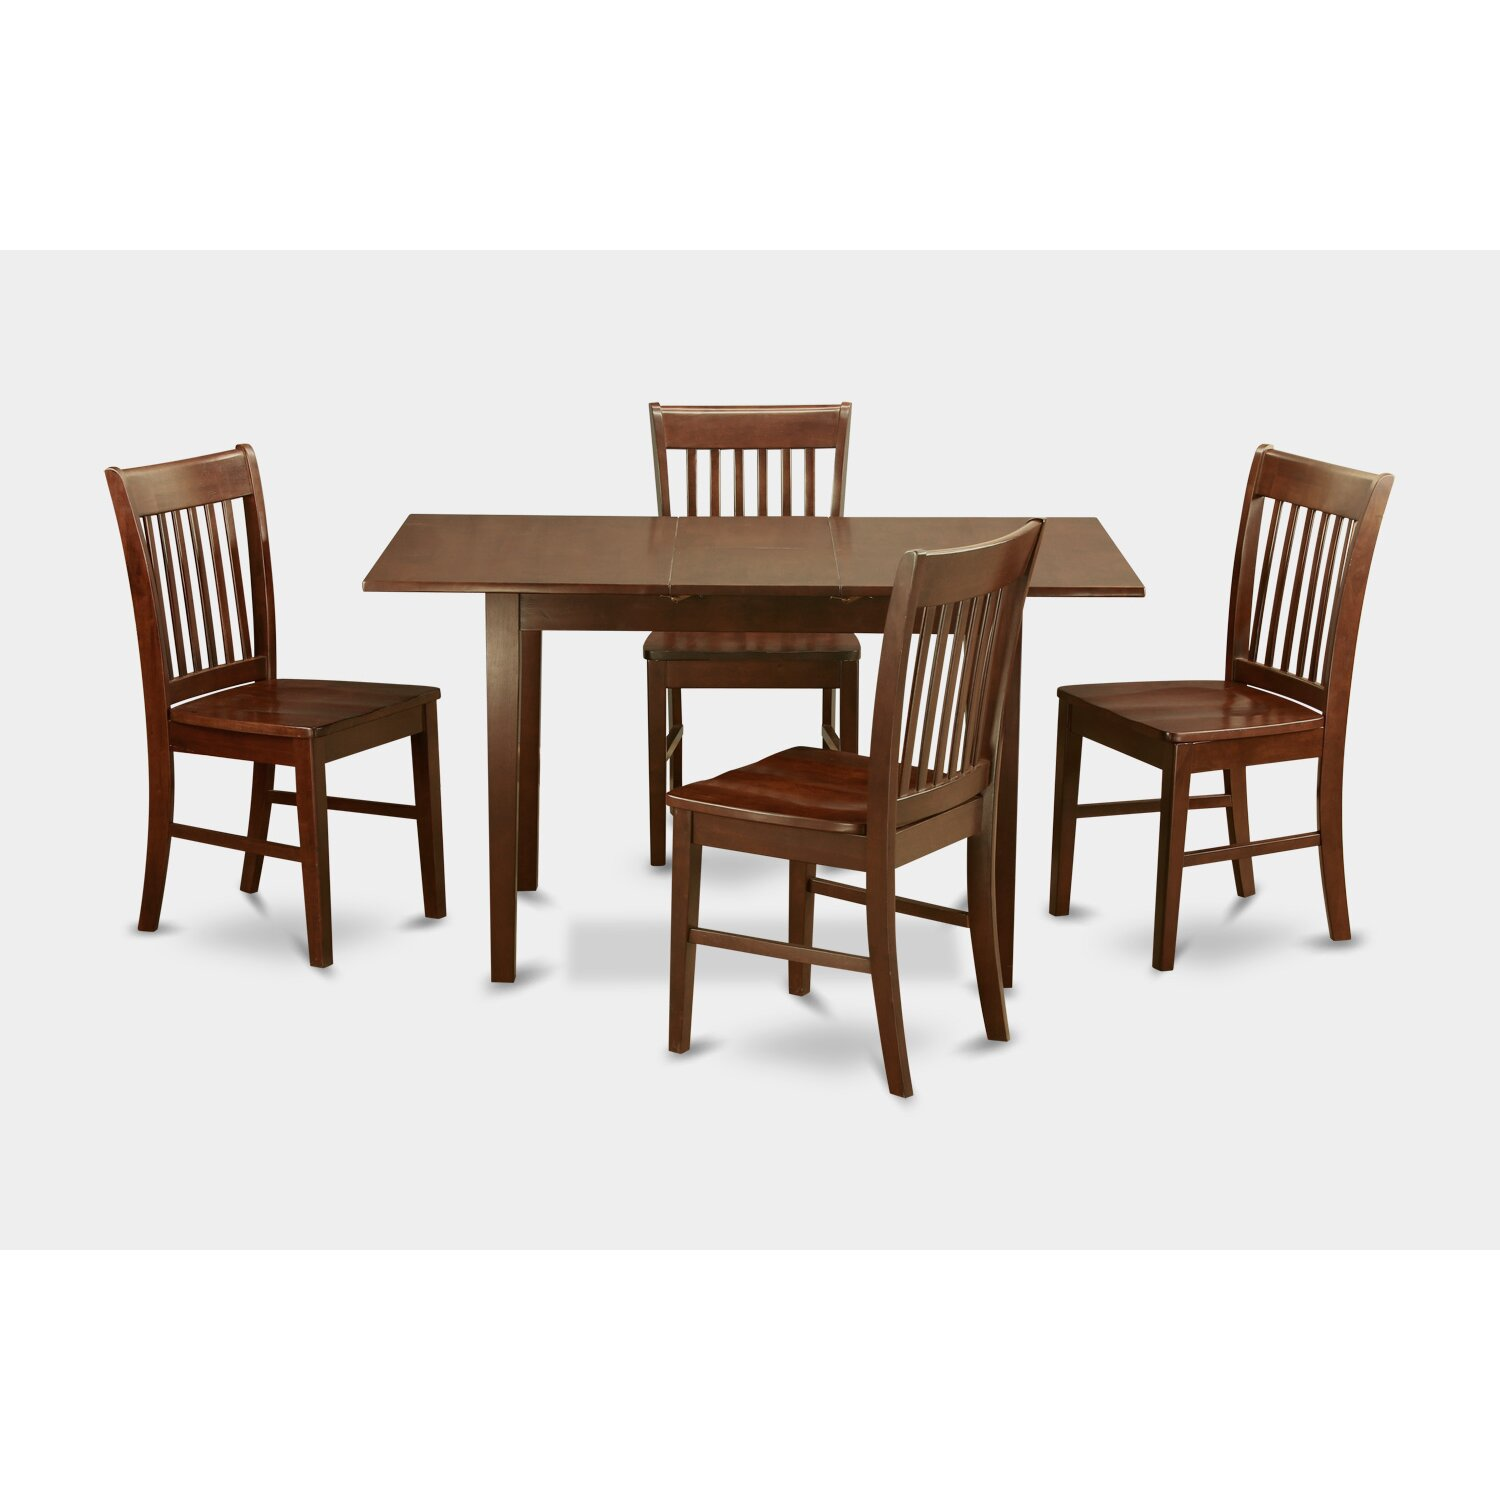 East west norfolk 5 piece dining set reviews wayfair for 5 piece dining room sets